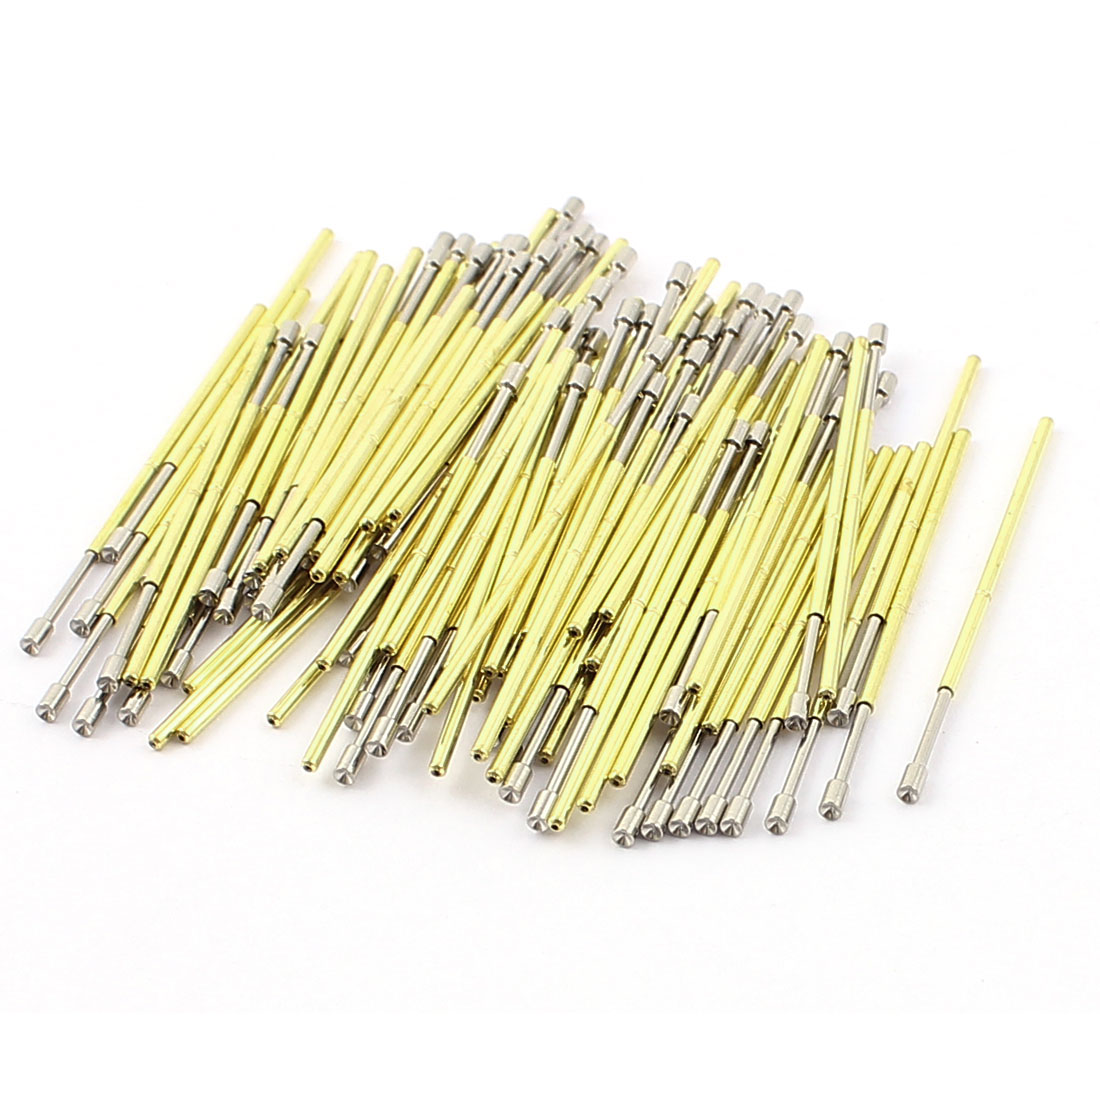 100 Pcs P75A 1.3mm Dia Concave Tip Spring Test Probes Testing Contact Pin Gold Tone 33mm Length